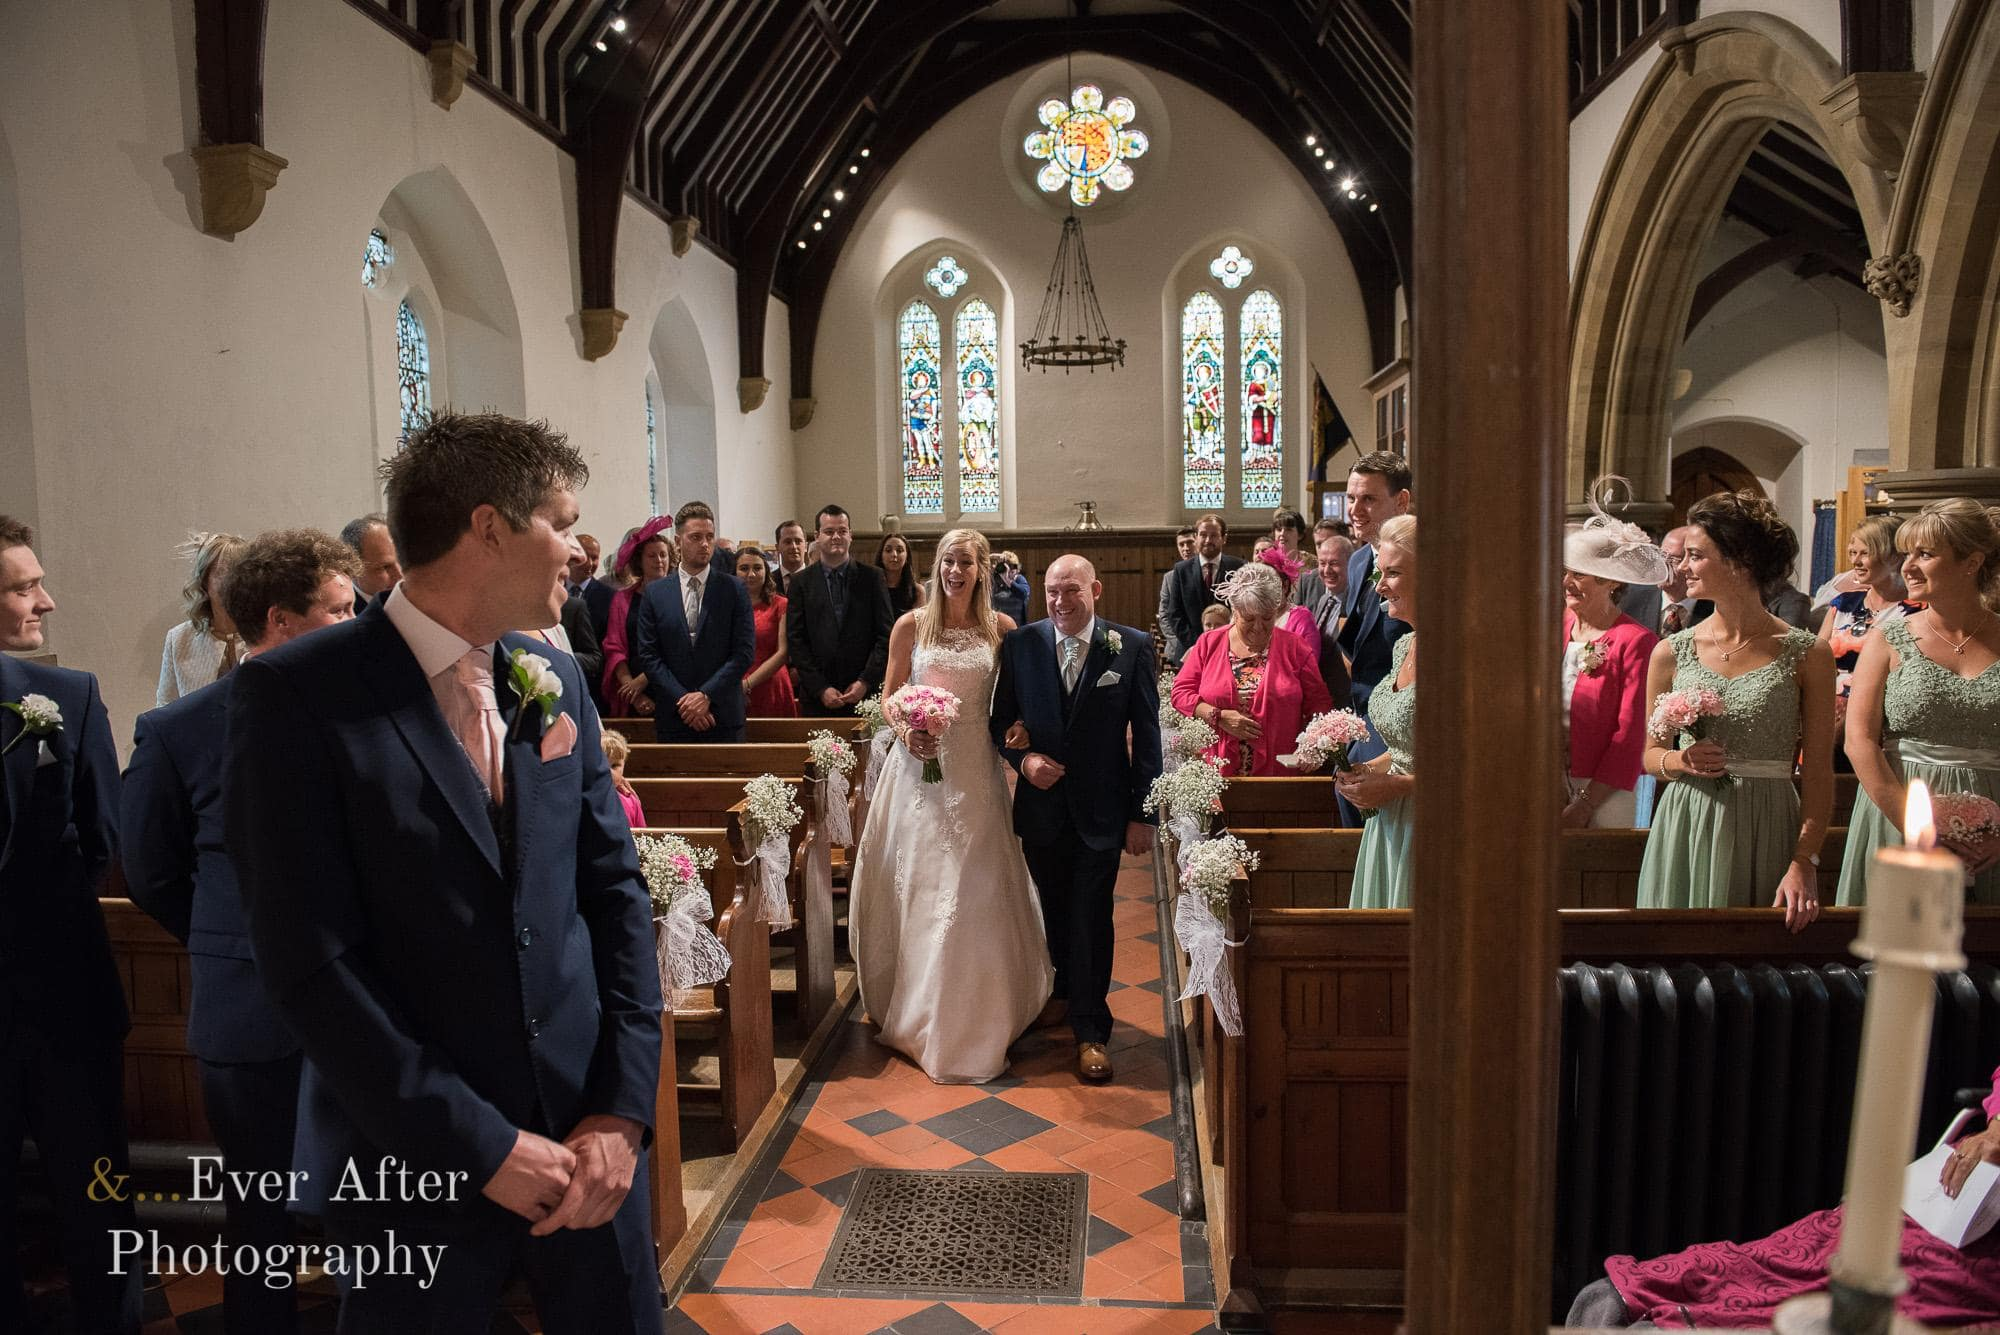 wedding day, church ceremony, marriage, bride, groom, aisle